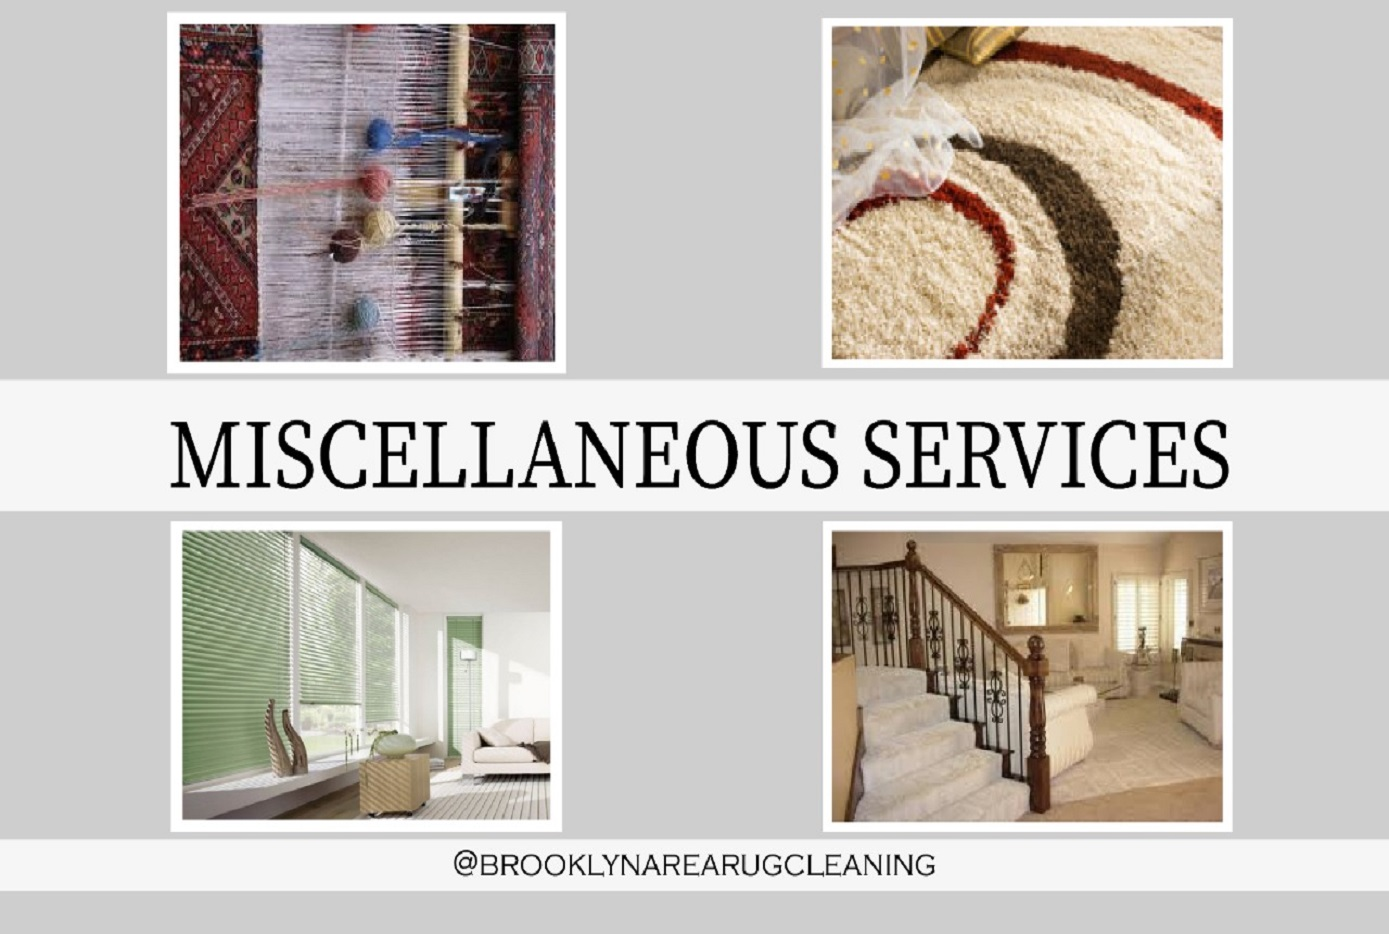 miscellaneous services